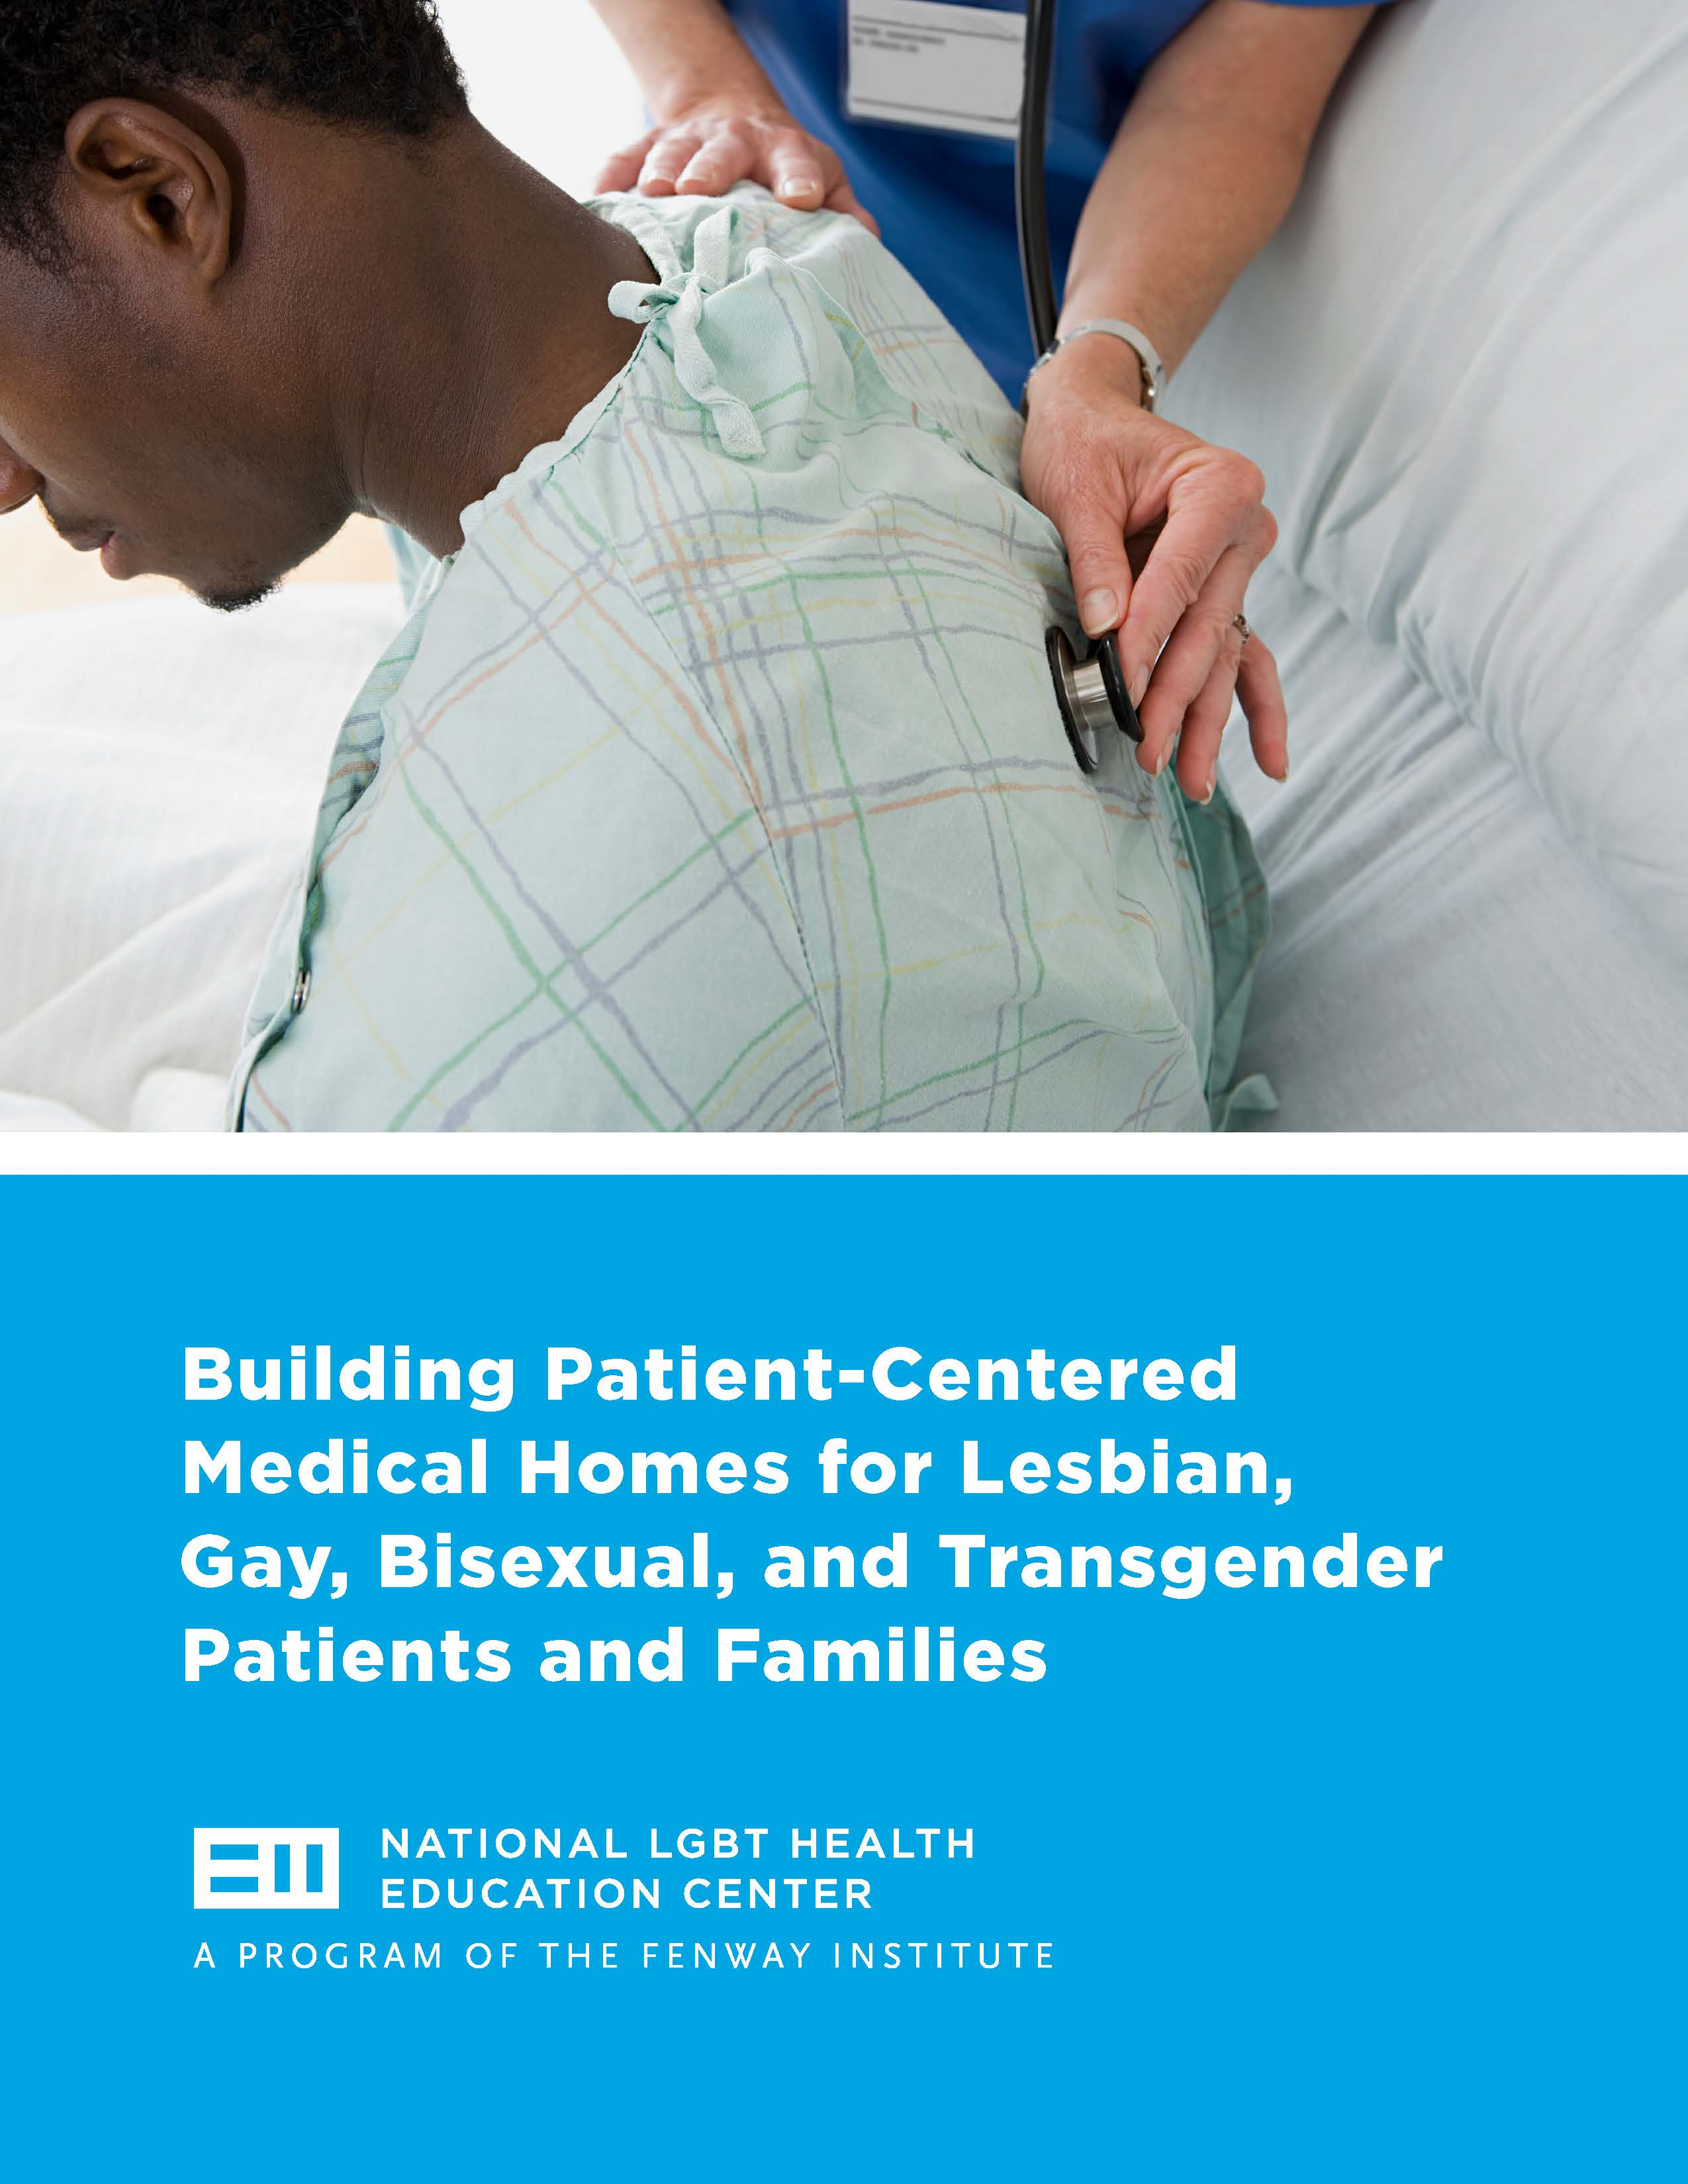 Care cover health that transgender washington